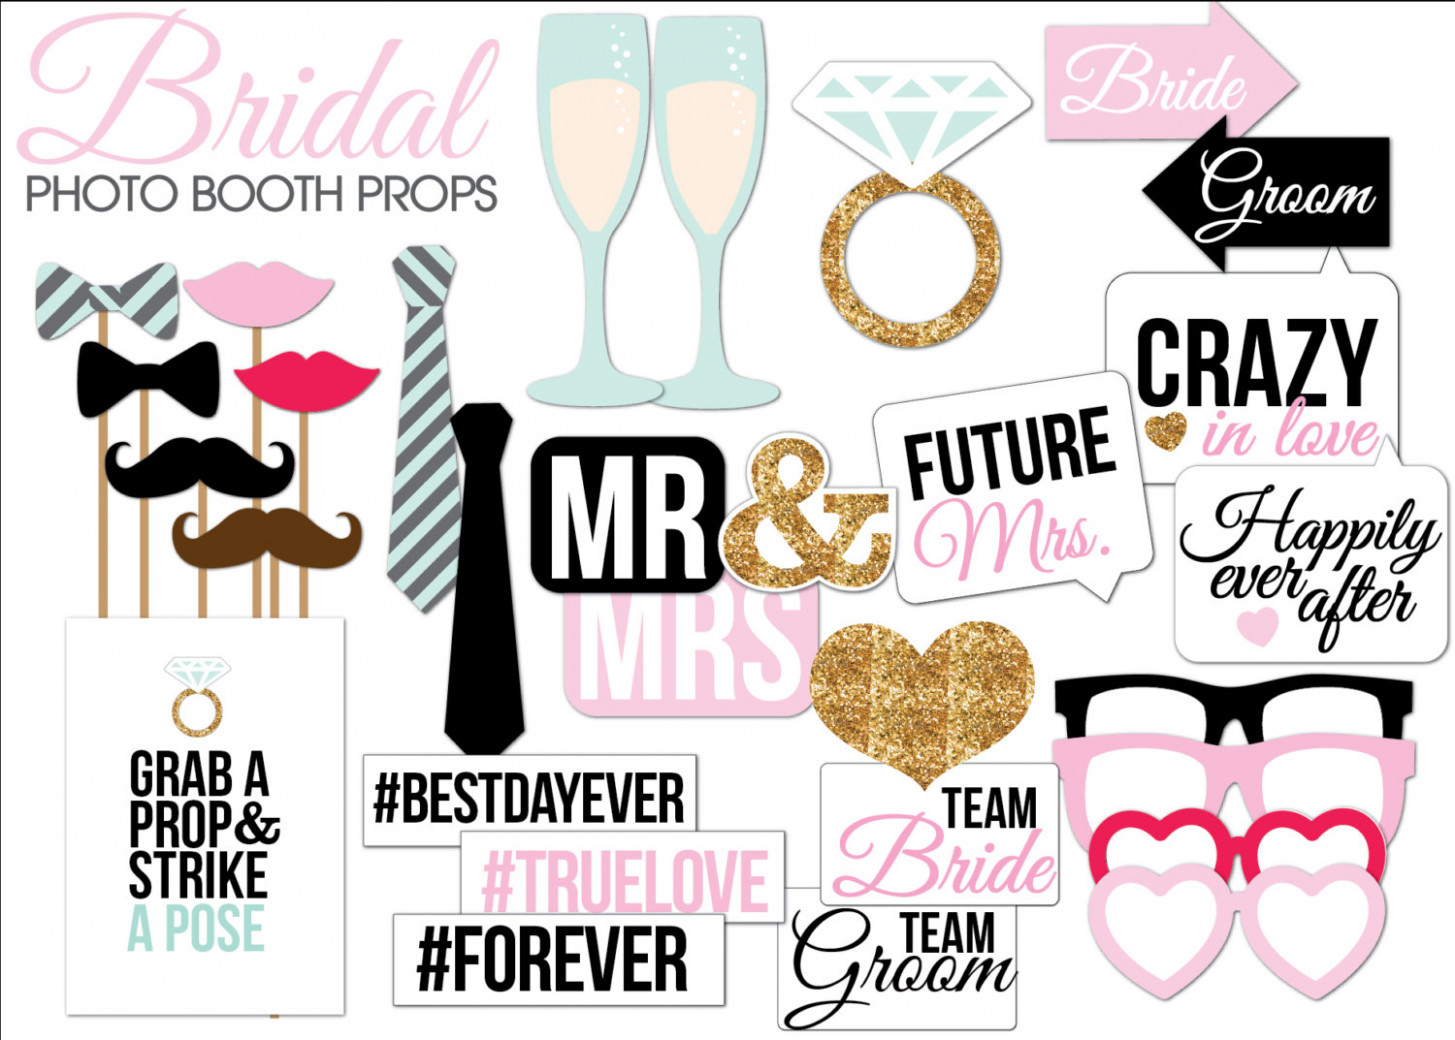 Bridal Shower/wedding Photo Booth Props Printable Pdf – Smartvaforu - Free Printable Wedding Photo Booth Props